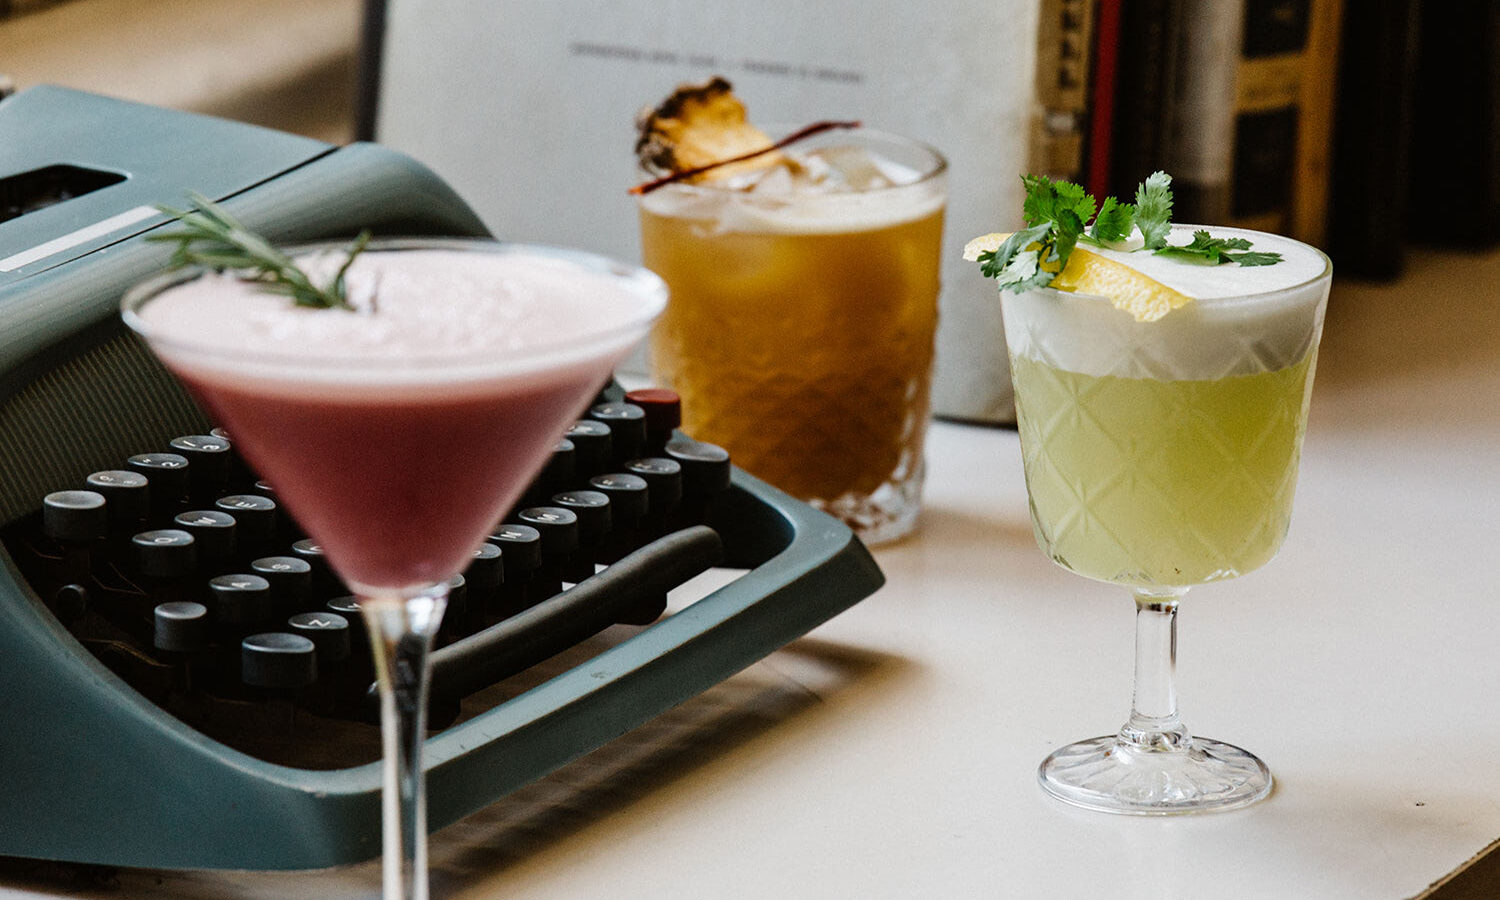 The Decadente Cocktails